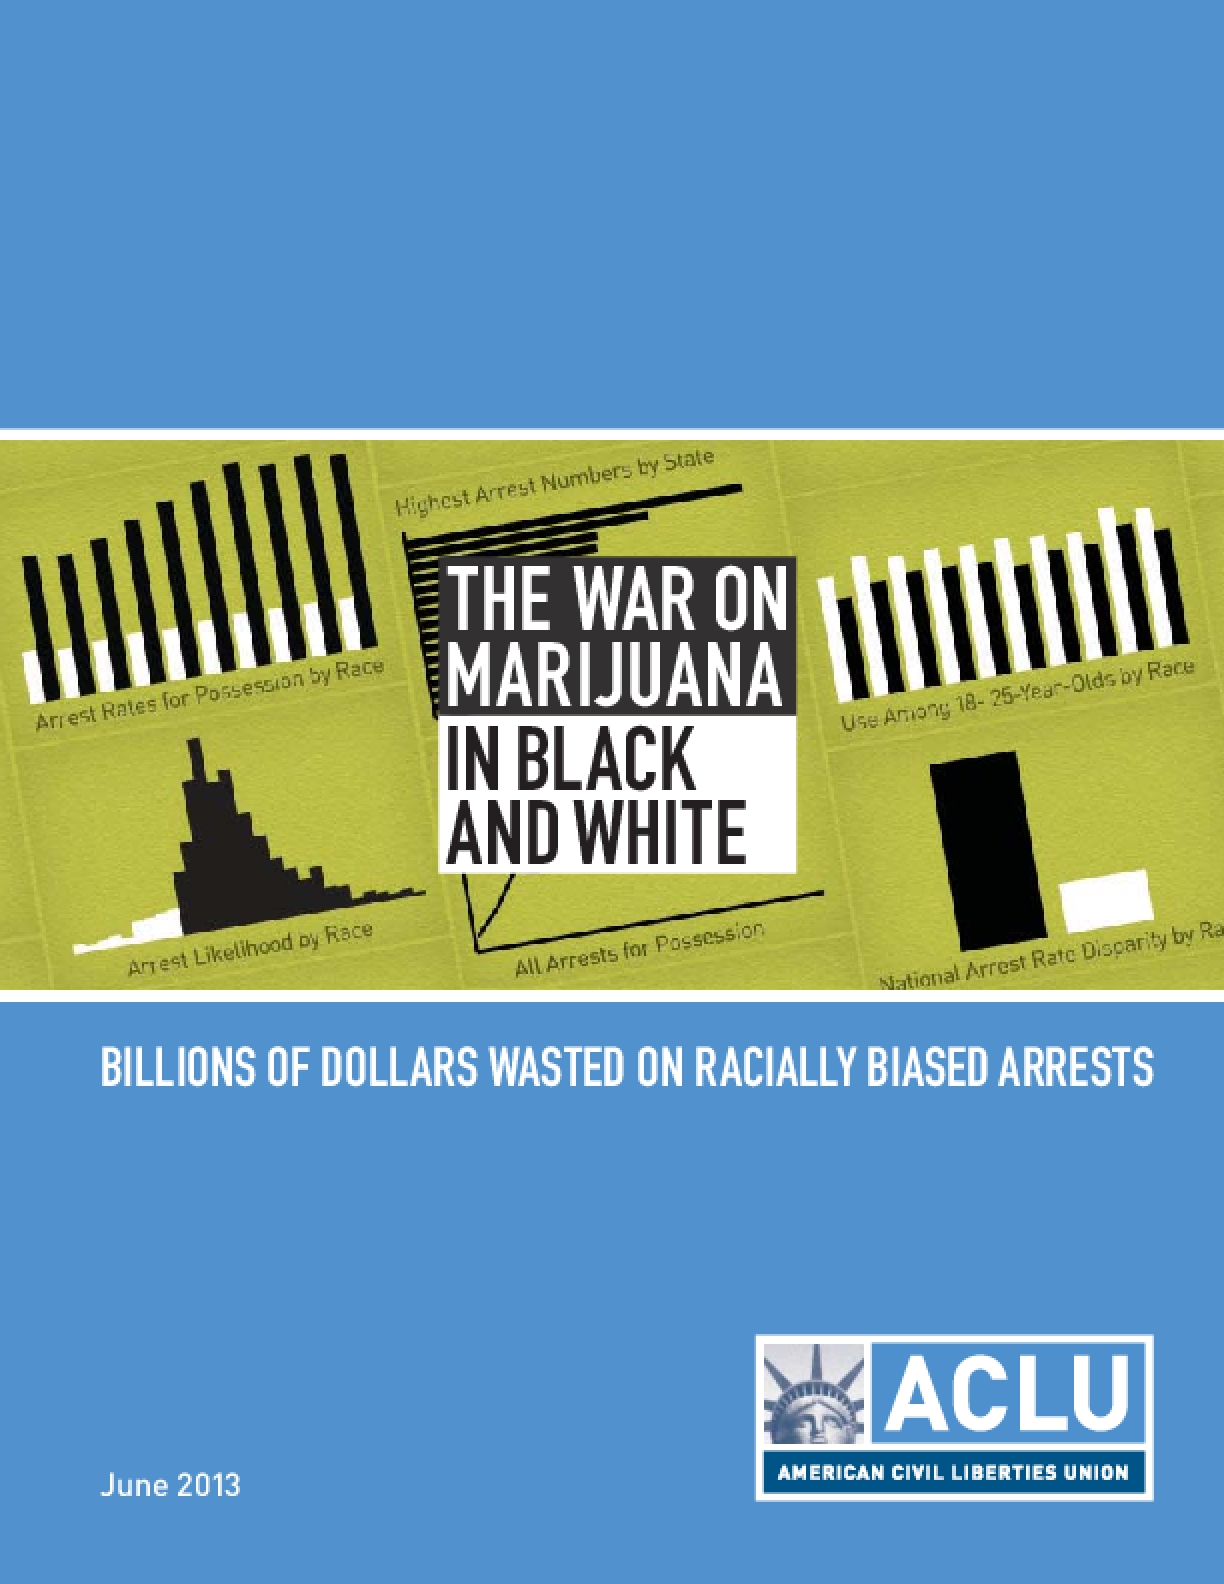 The War on Marijuana in Black and White: Billions of Dollars Wasted on Racially Biased Arrests